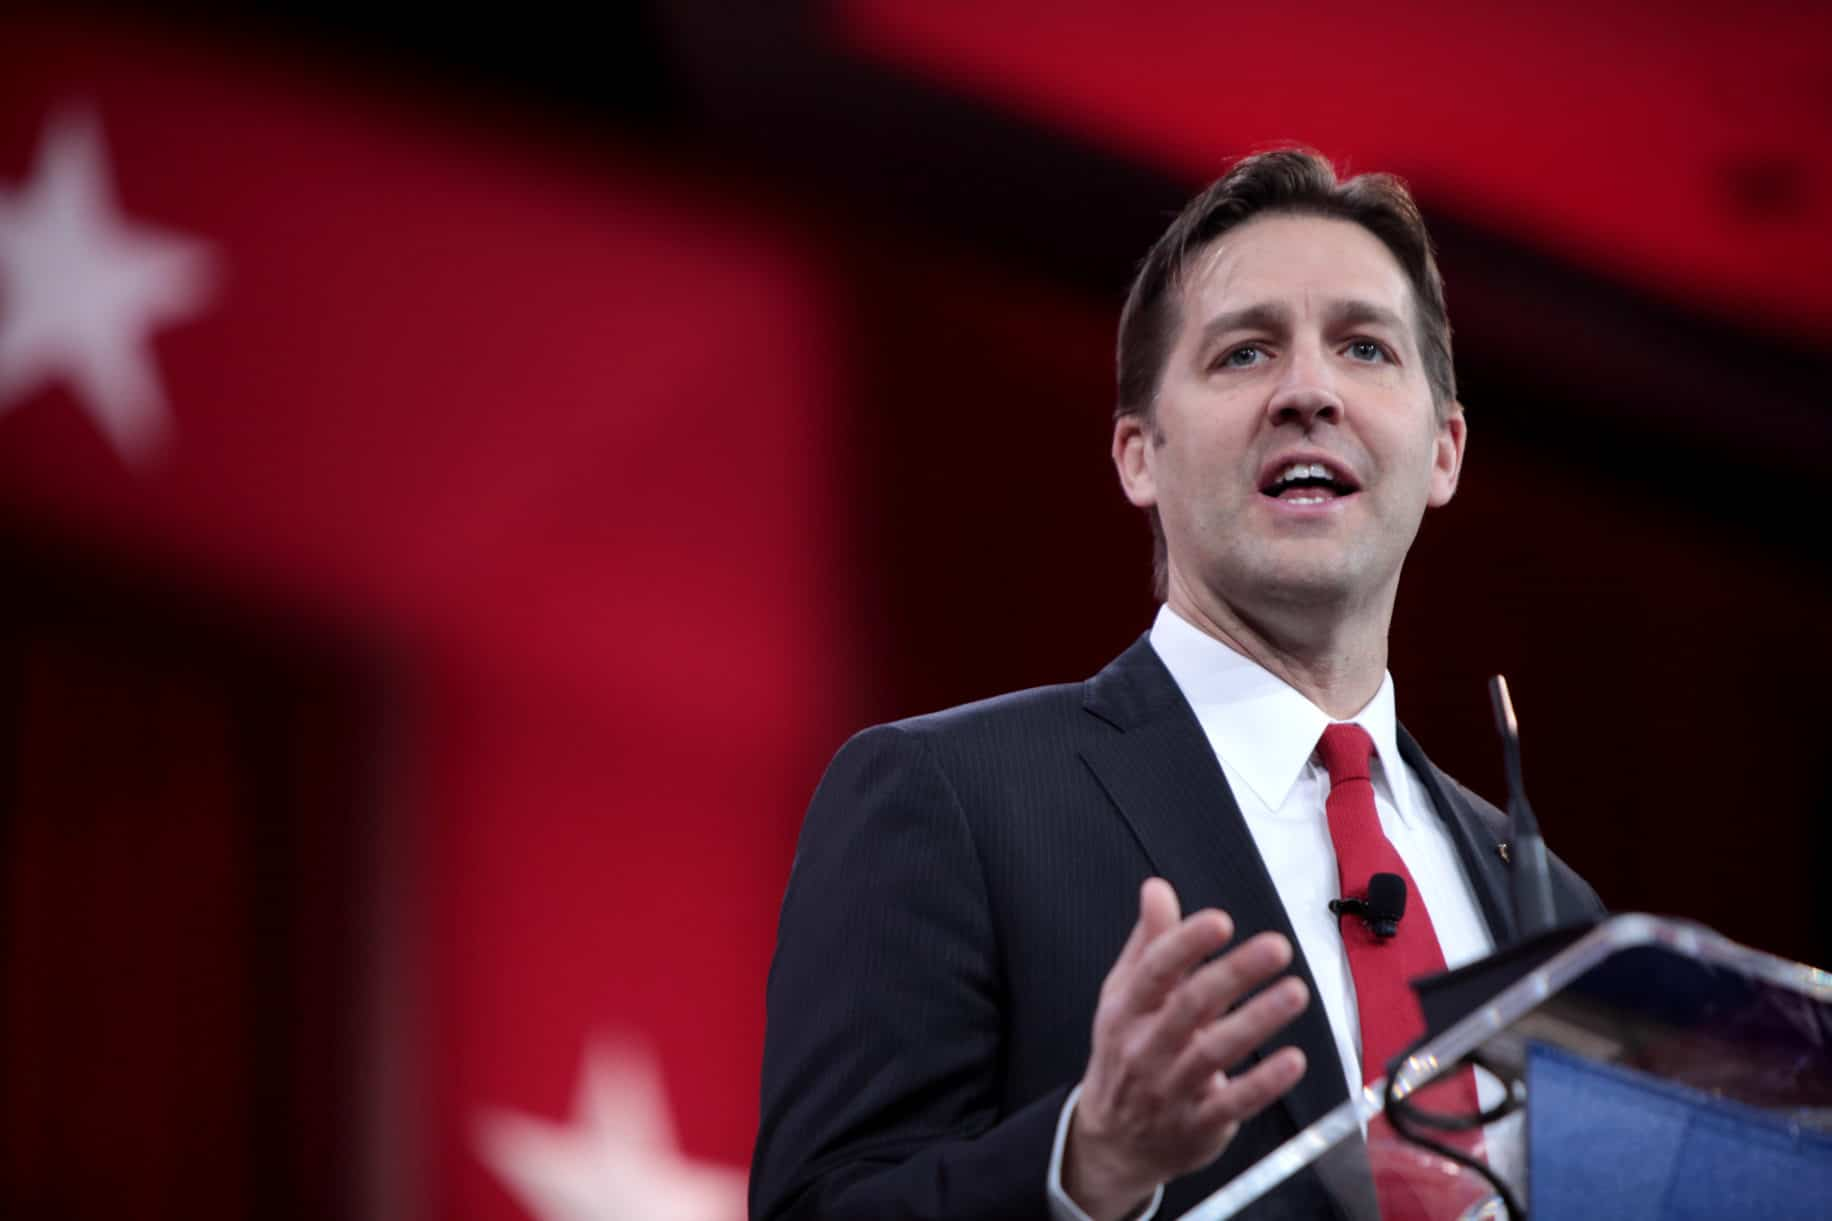 Movement to Draft Ben Sasse for 3rd Party Ticket Underway ...